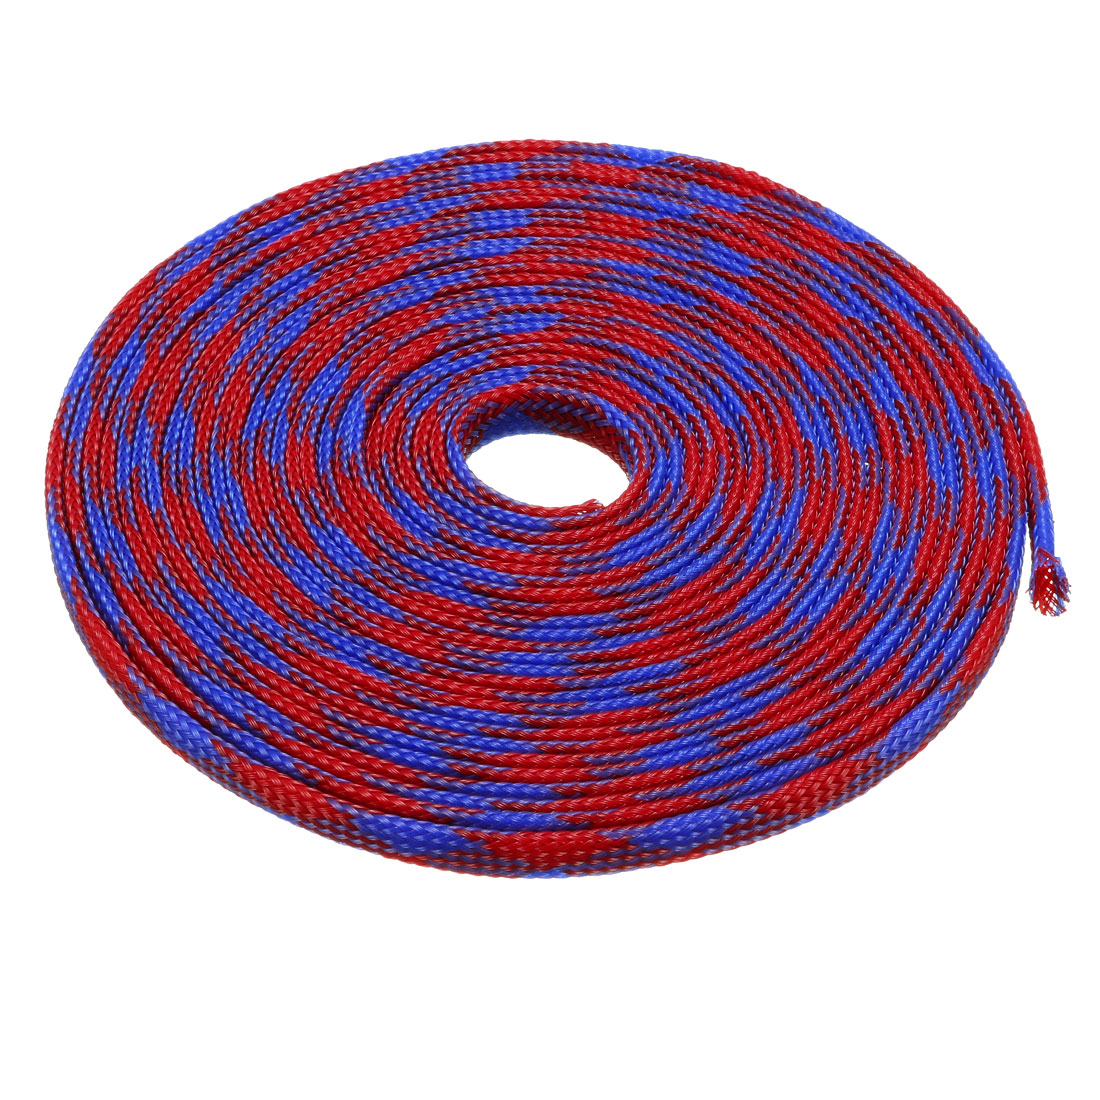 4mm Dia Tight Braided PET Expandable Sleeving Cable Wrap Sheath Blue Red 10M Length